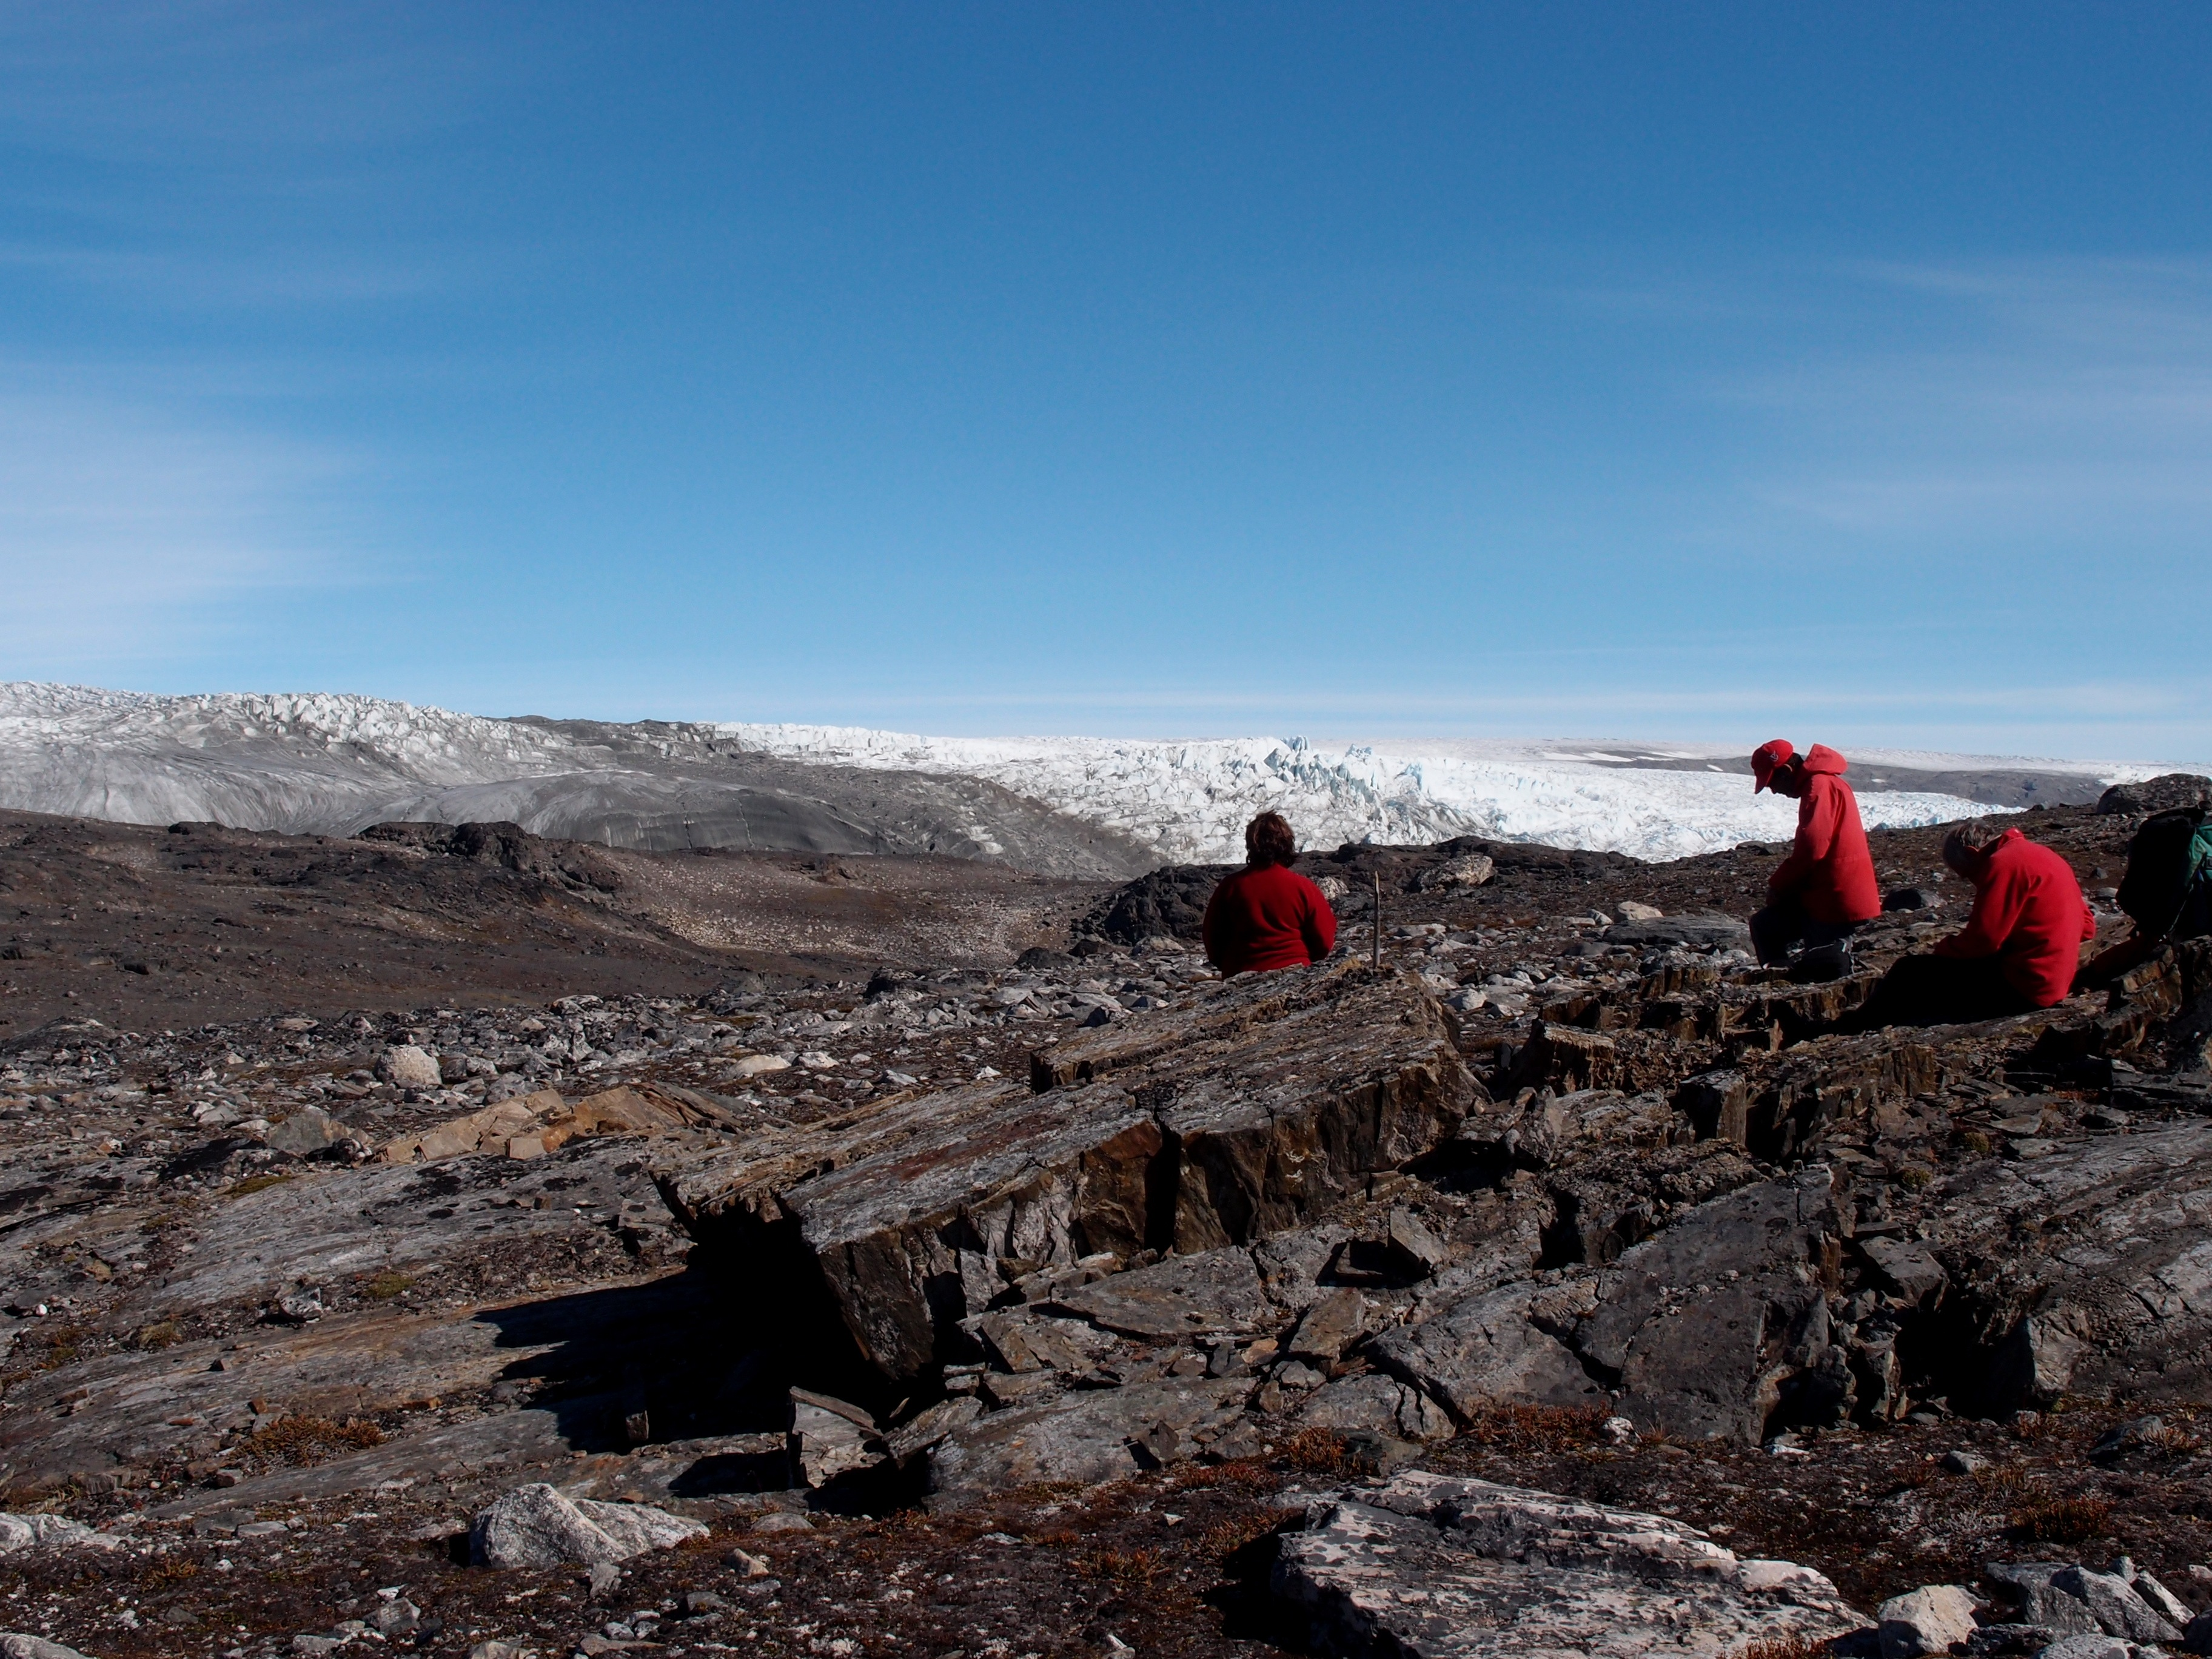 Scientists in Greenland excavating rocks that may hold 3.8-billion-year-old evidence of life. Credit: Laure Gauthiez Image credit: None